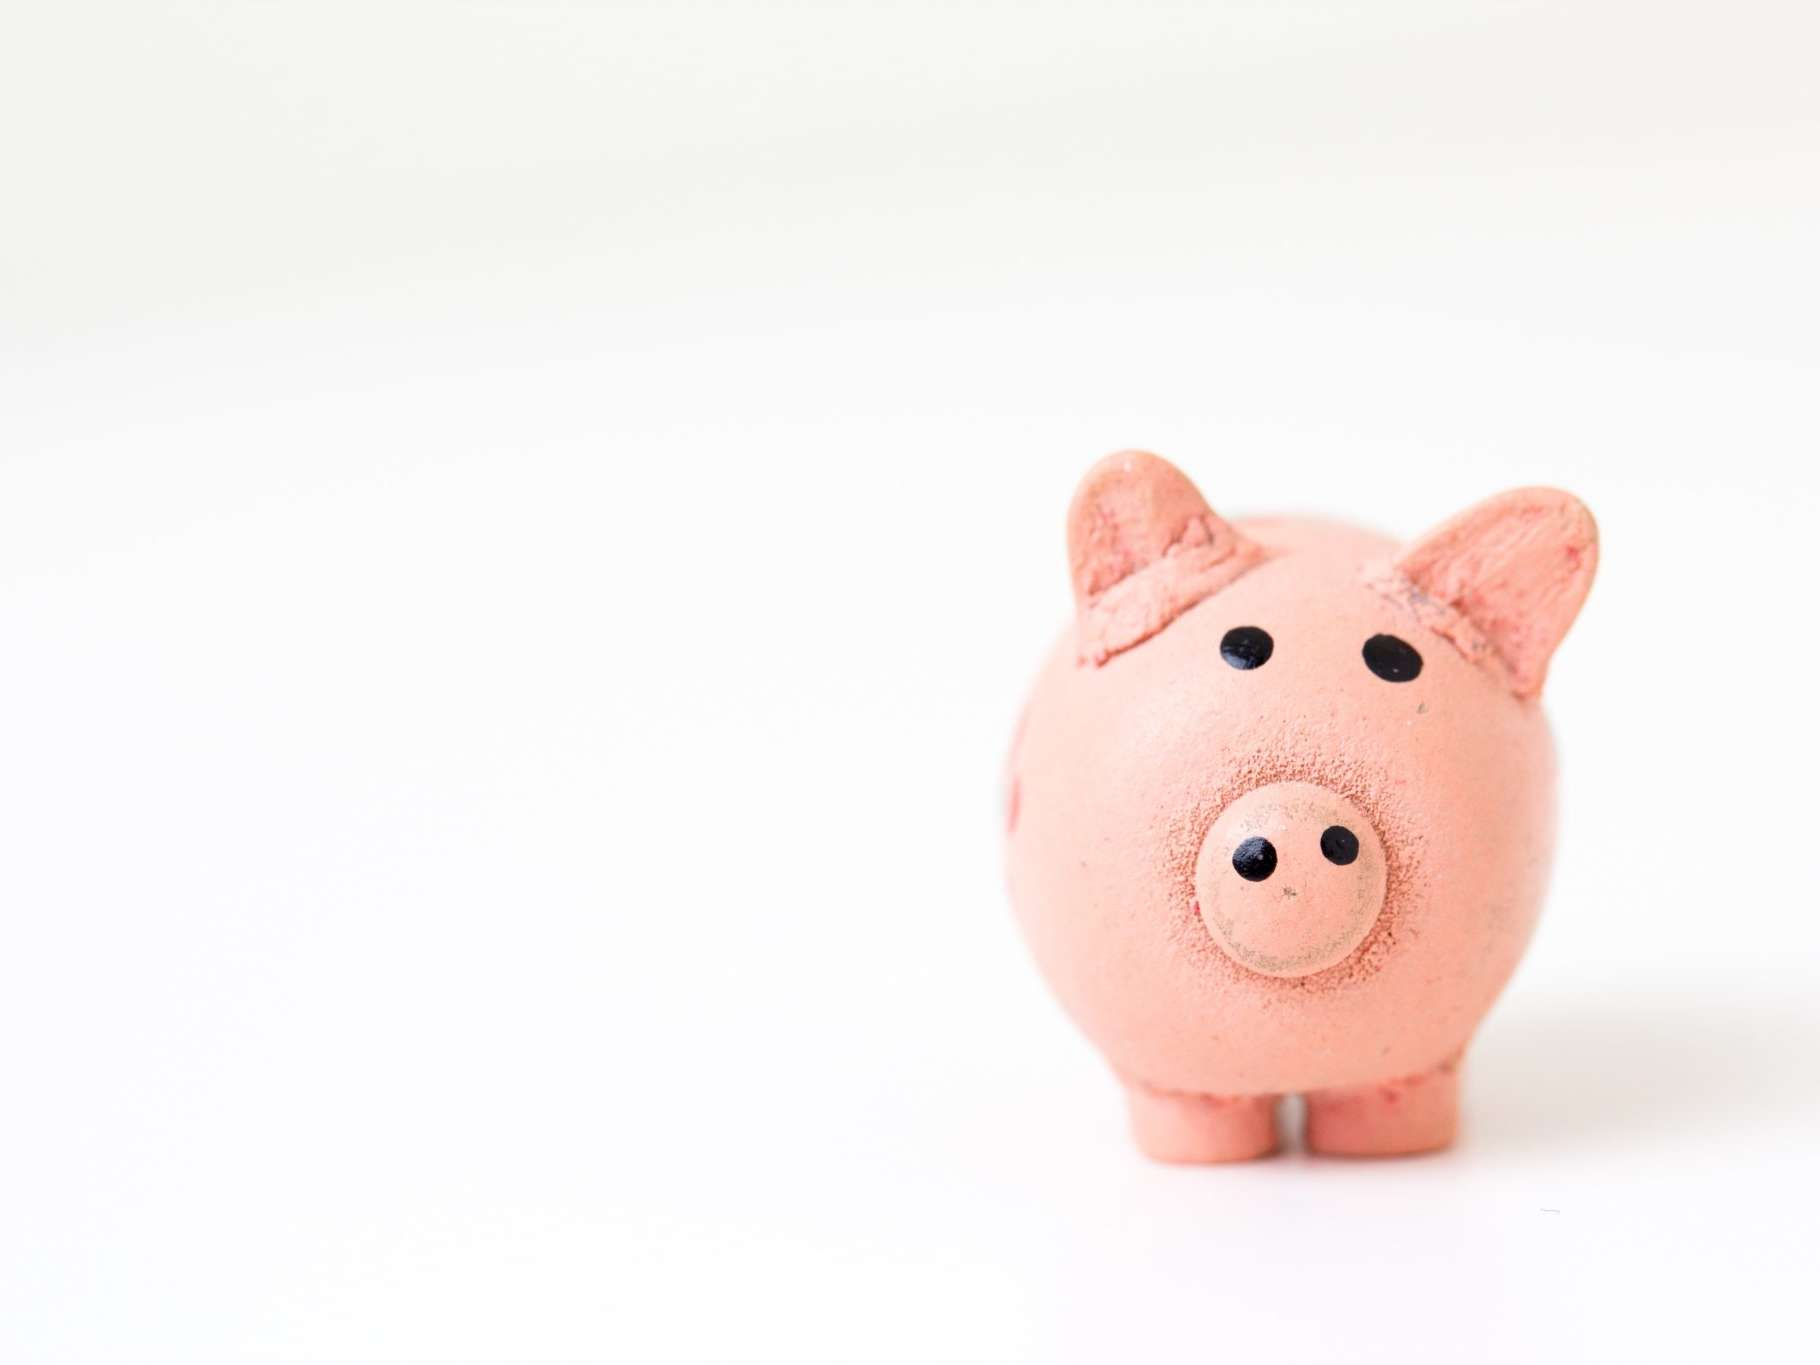 a piggy bank on a white background